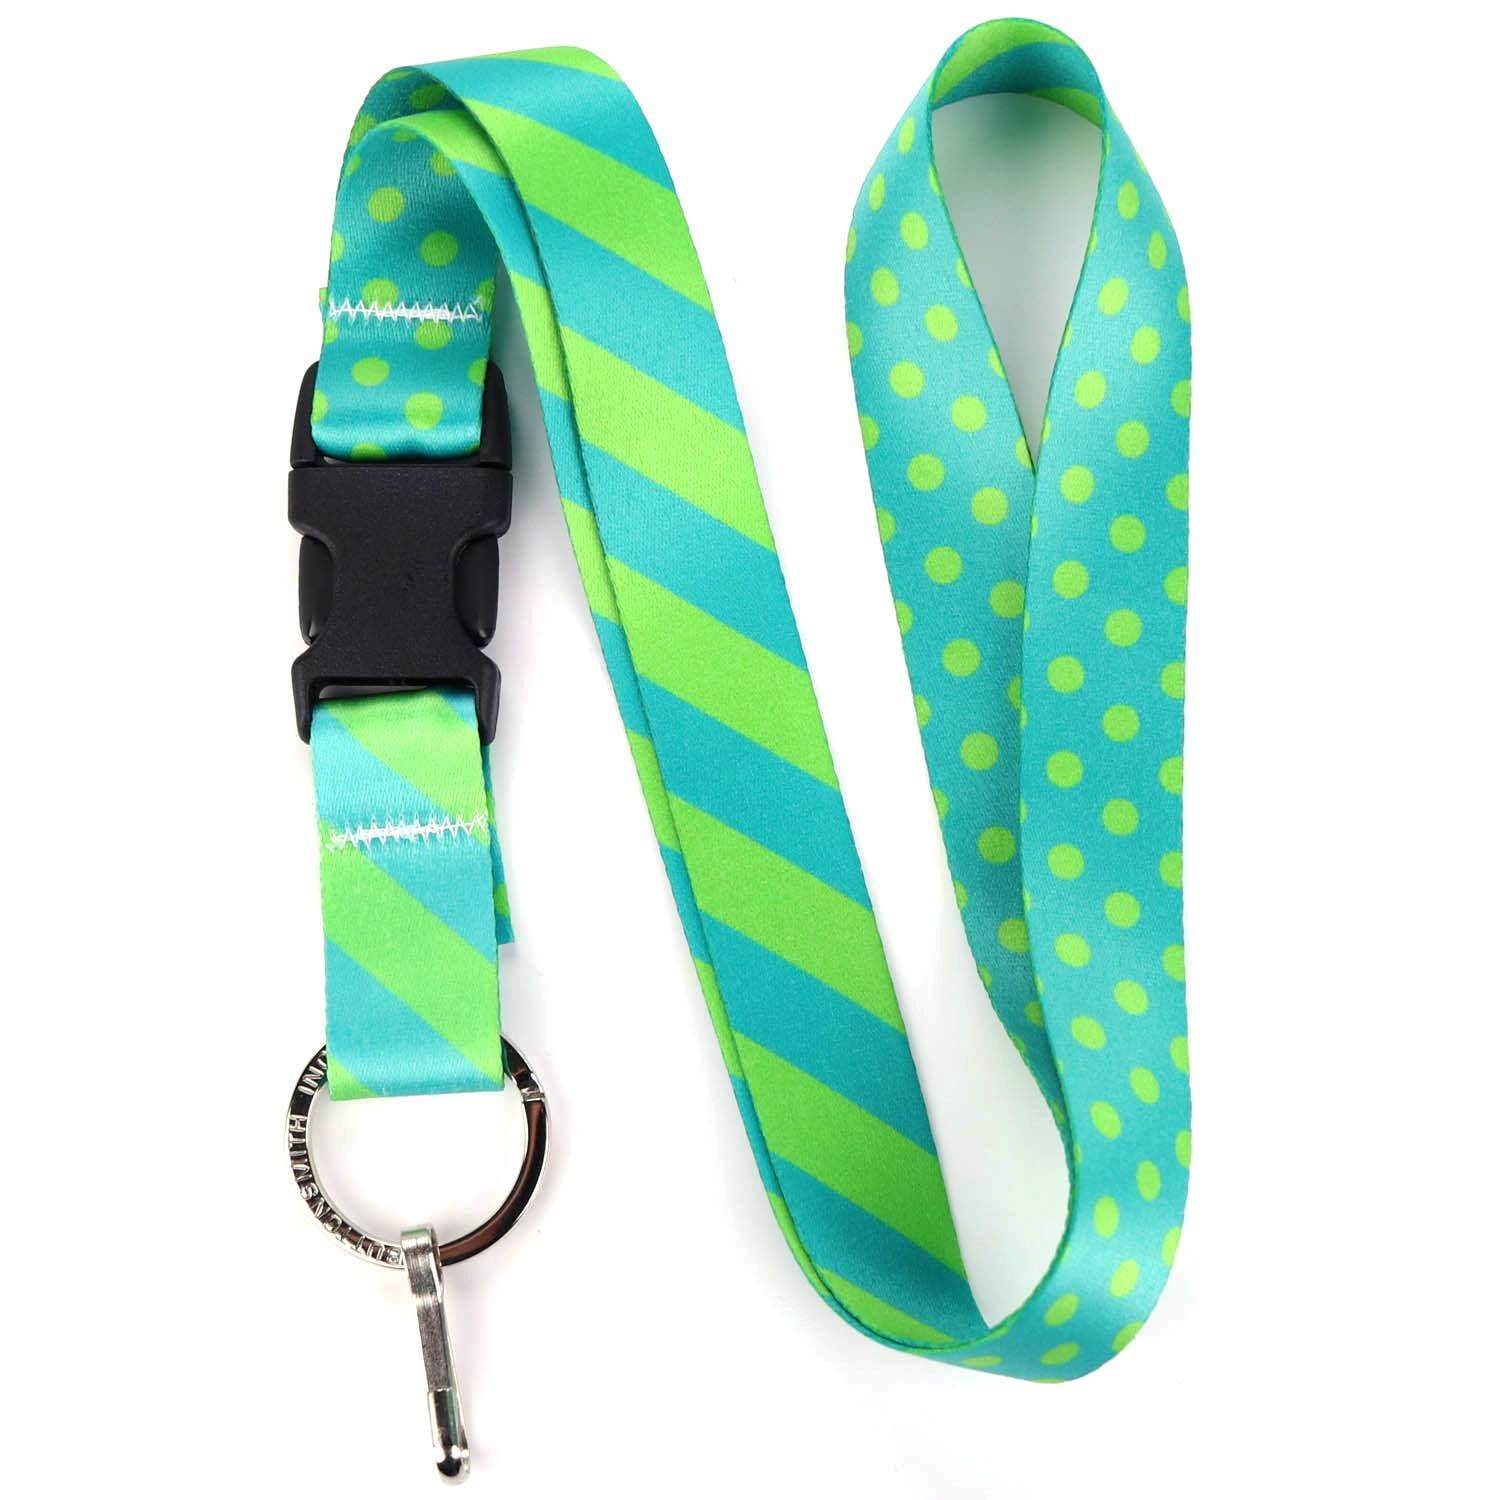 Buttonsmith Aqua Dots Premium Lanyard - with Buckle and Flat Ring - Made in The USA